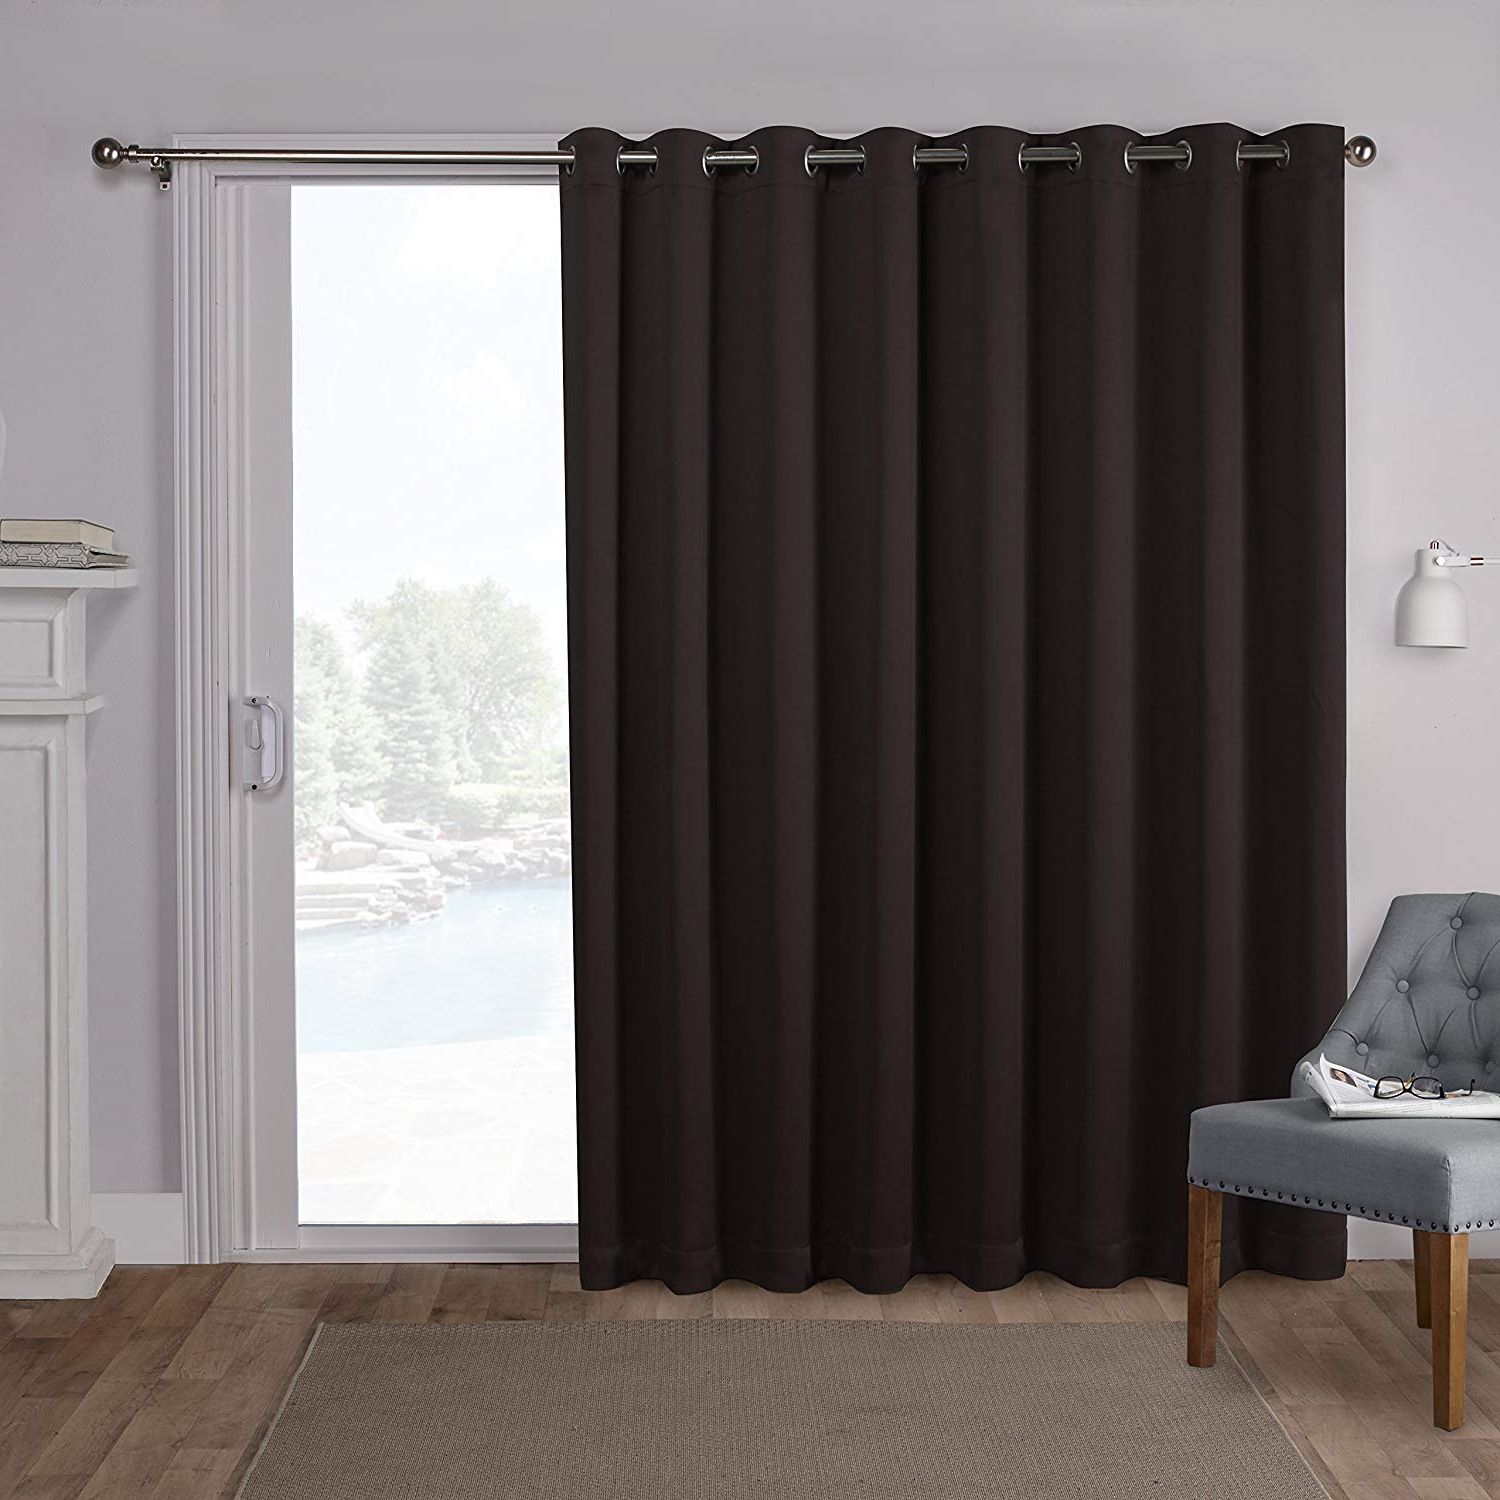 Exclusive Home Sateen Patio Woven Blackout Grommet Top Single Curtain Panel, Espresso, 100X84 For Well Liked Patio Grommet Top Single Curtain Panels (Gallery 4 of 20)